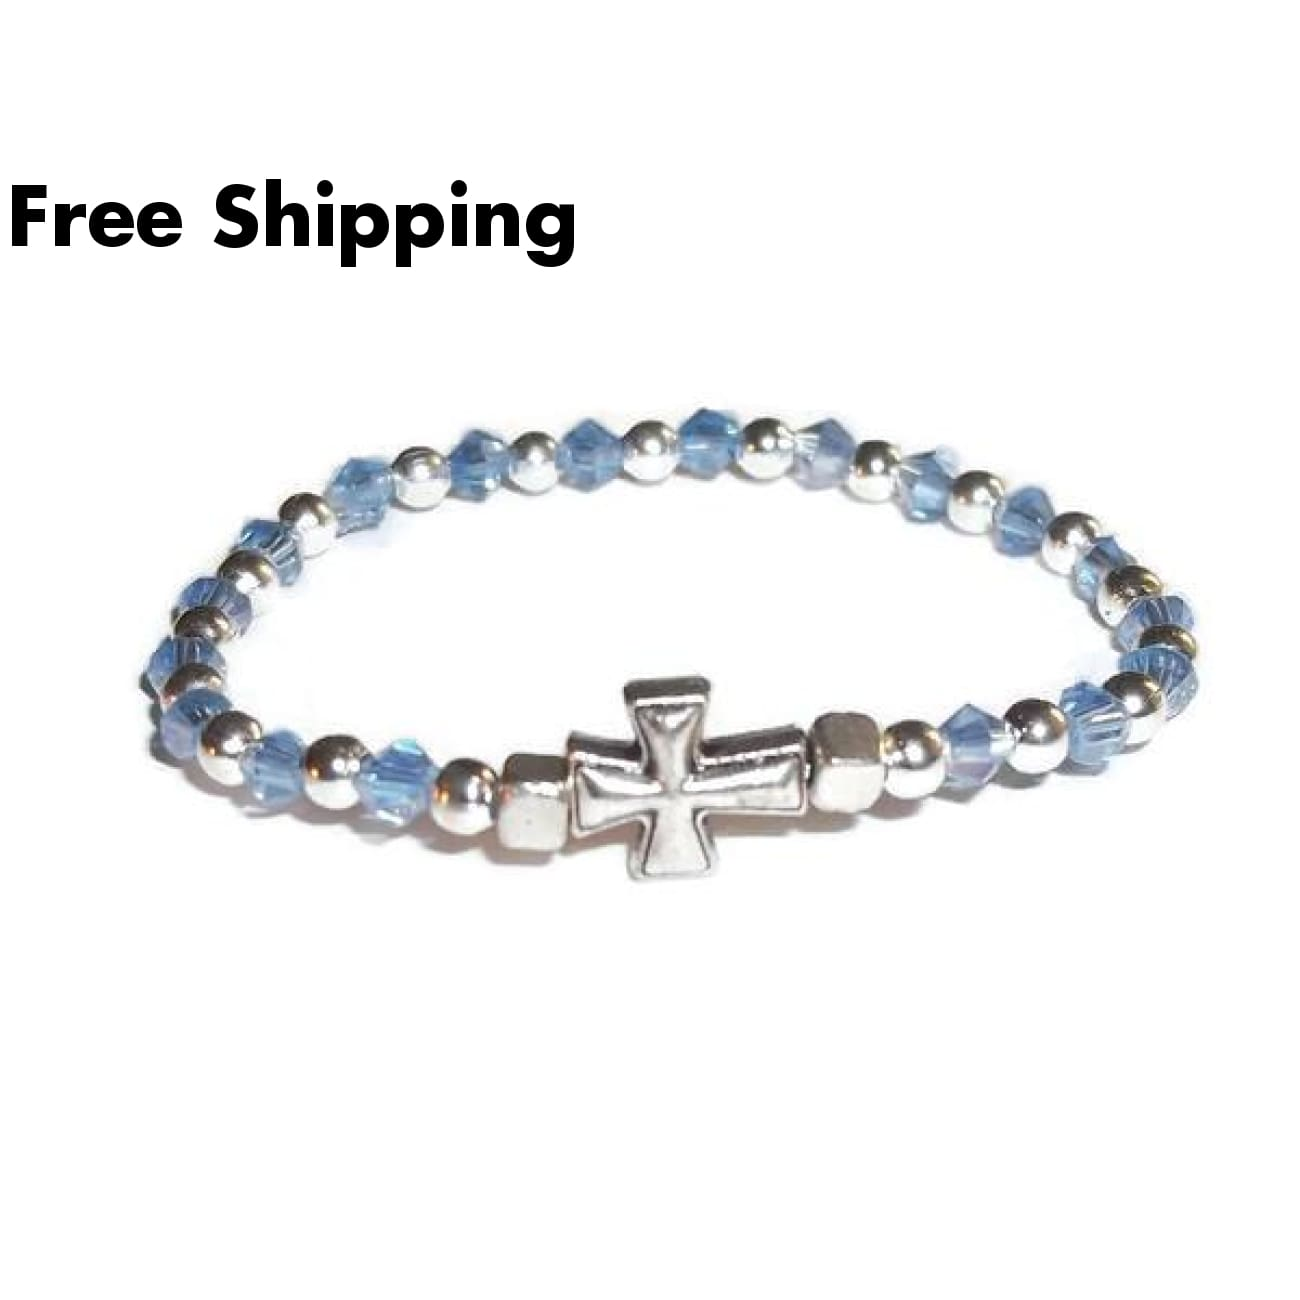 Cross Pale Blue Swarovski Crystal Childrens Baby Infant Keepsake Hand Crafted Stretch Bracelet (Fits 6Mo-12Mo) - Bracelets